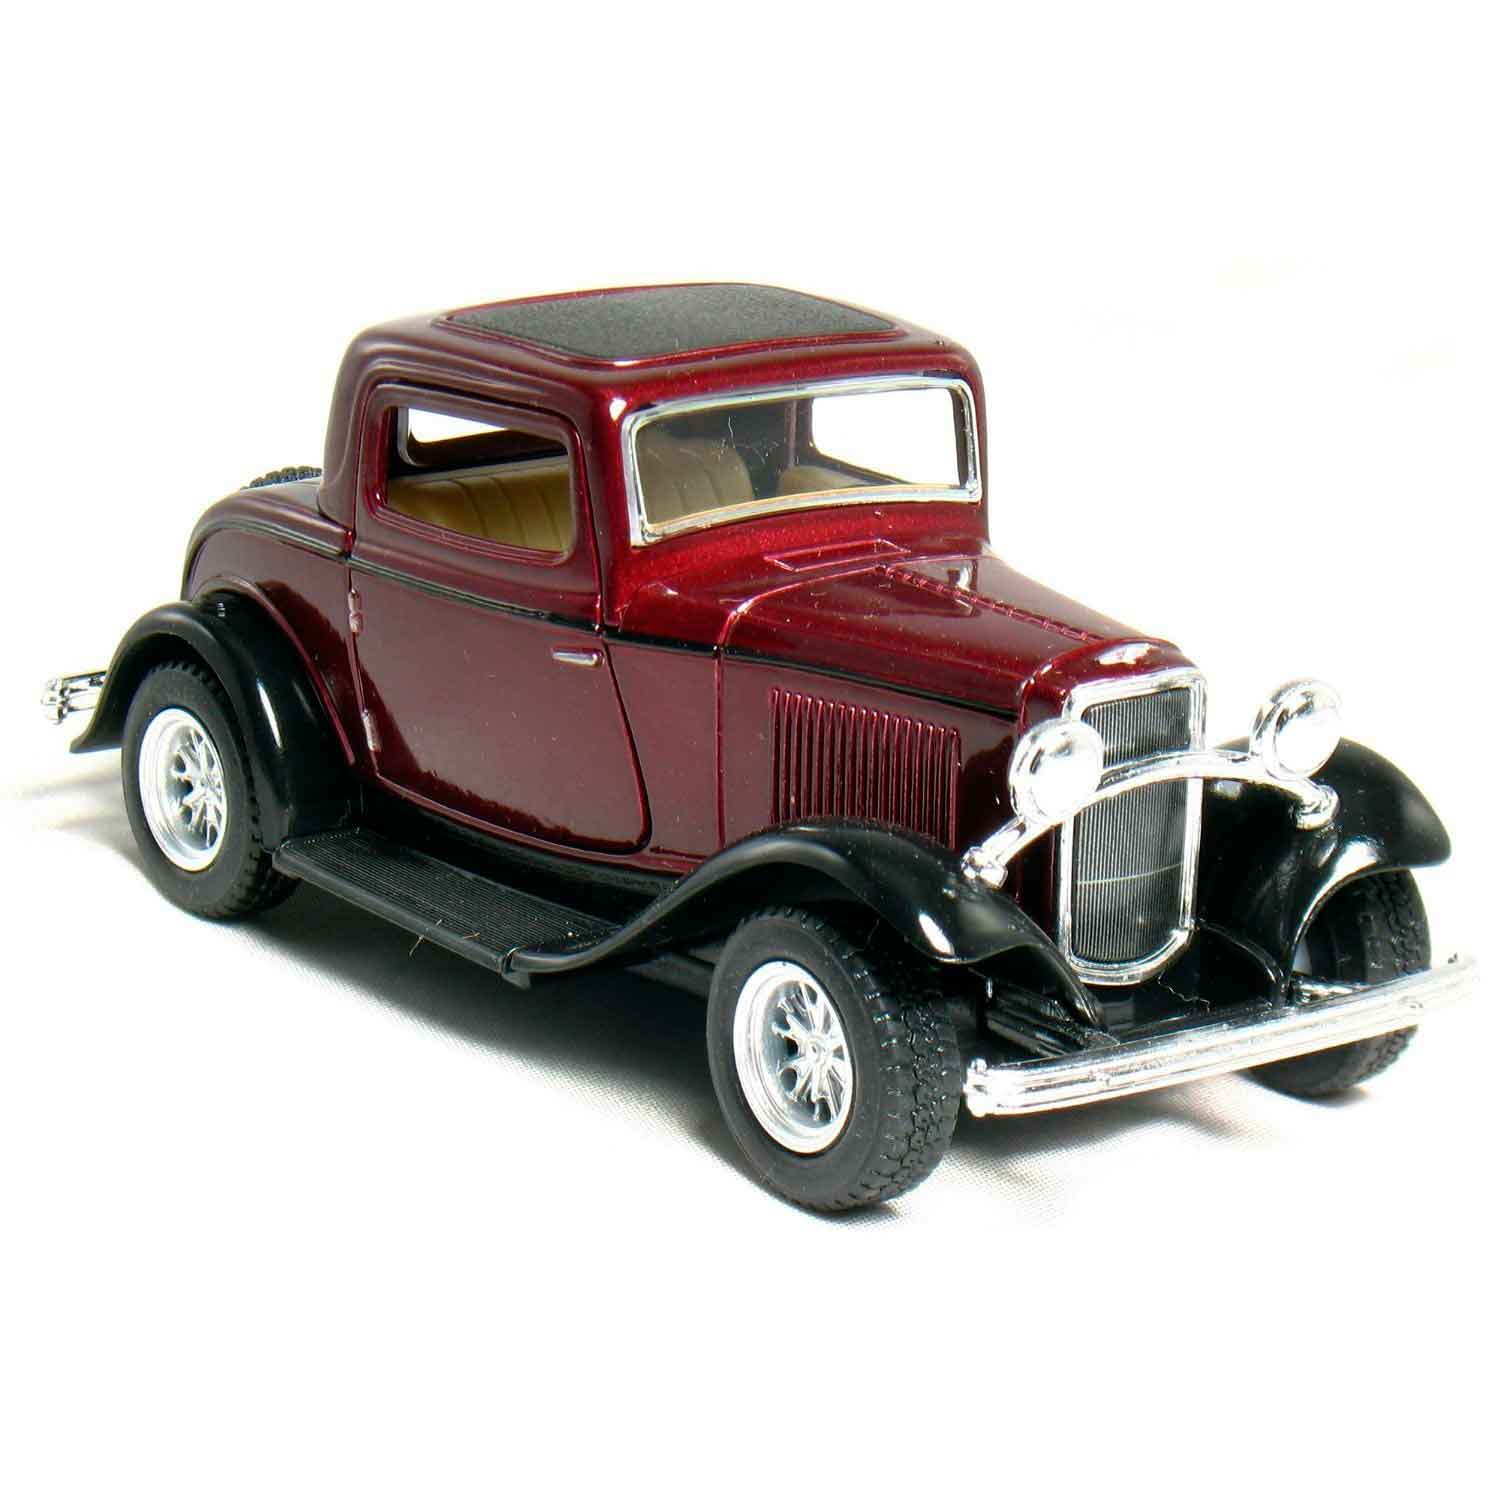 miniatura-1932-ford-coupe-escala-134-vinho-01